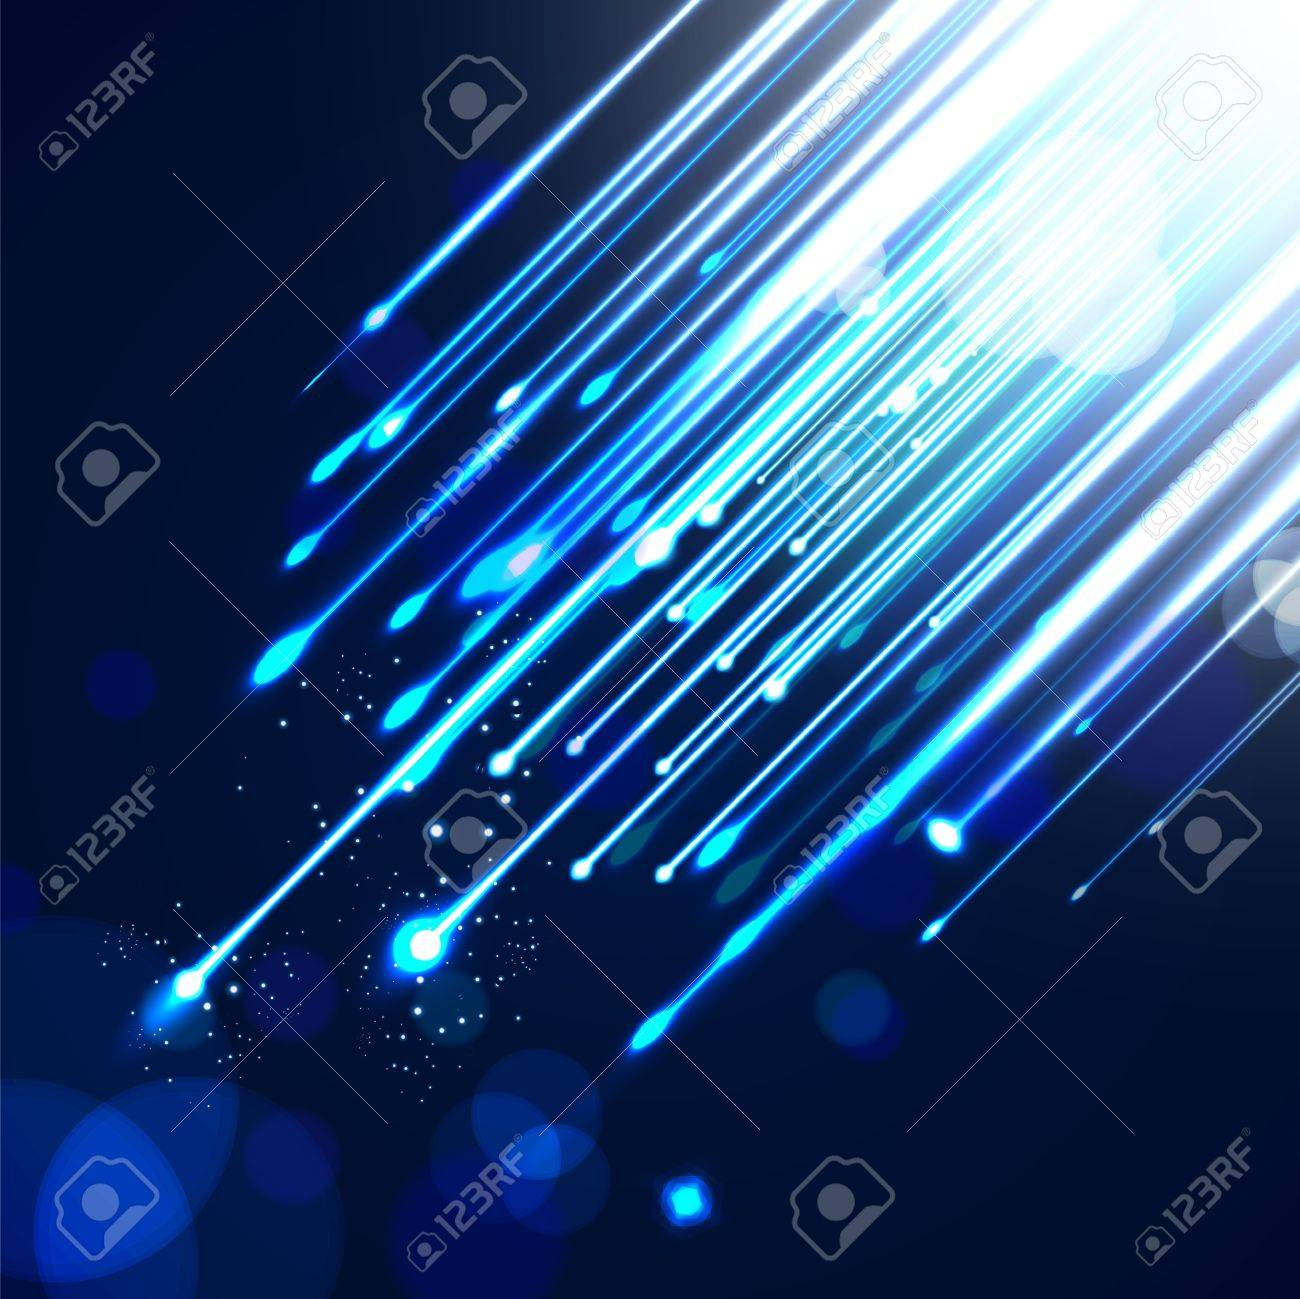 Abstract Background Vector - 11717023